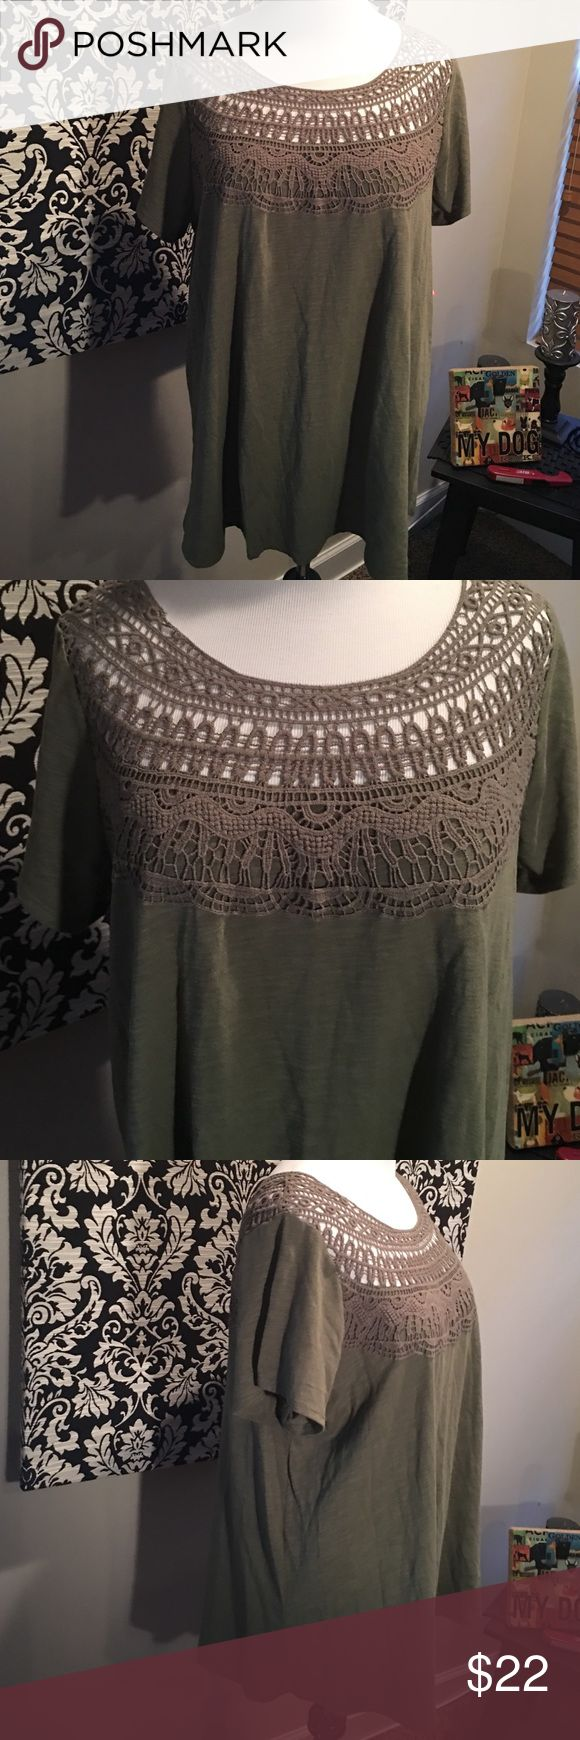 Liz Lange Maternity Target olive crochet tee Liz Lange Maternity Target olive crochet tee. Short sleeve, mastermind brand. Don't have to be pregnant to wear this, fits normally. New with tags, size XXL. Cotton. Liz Lange Tops Tees - Short Sleeve